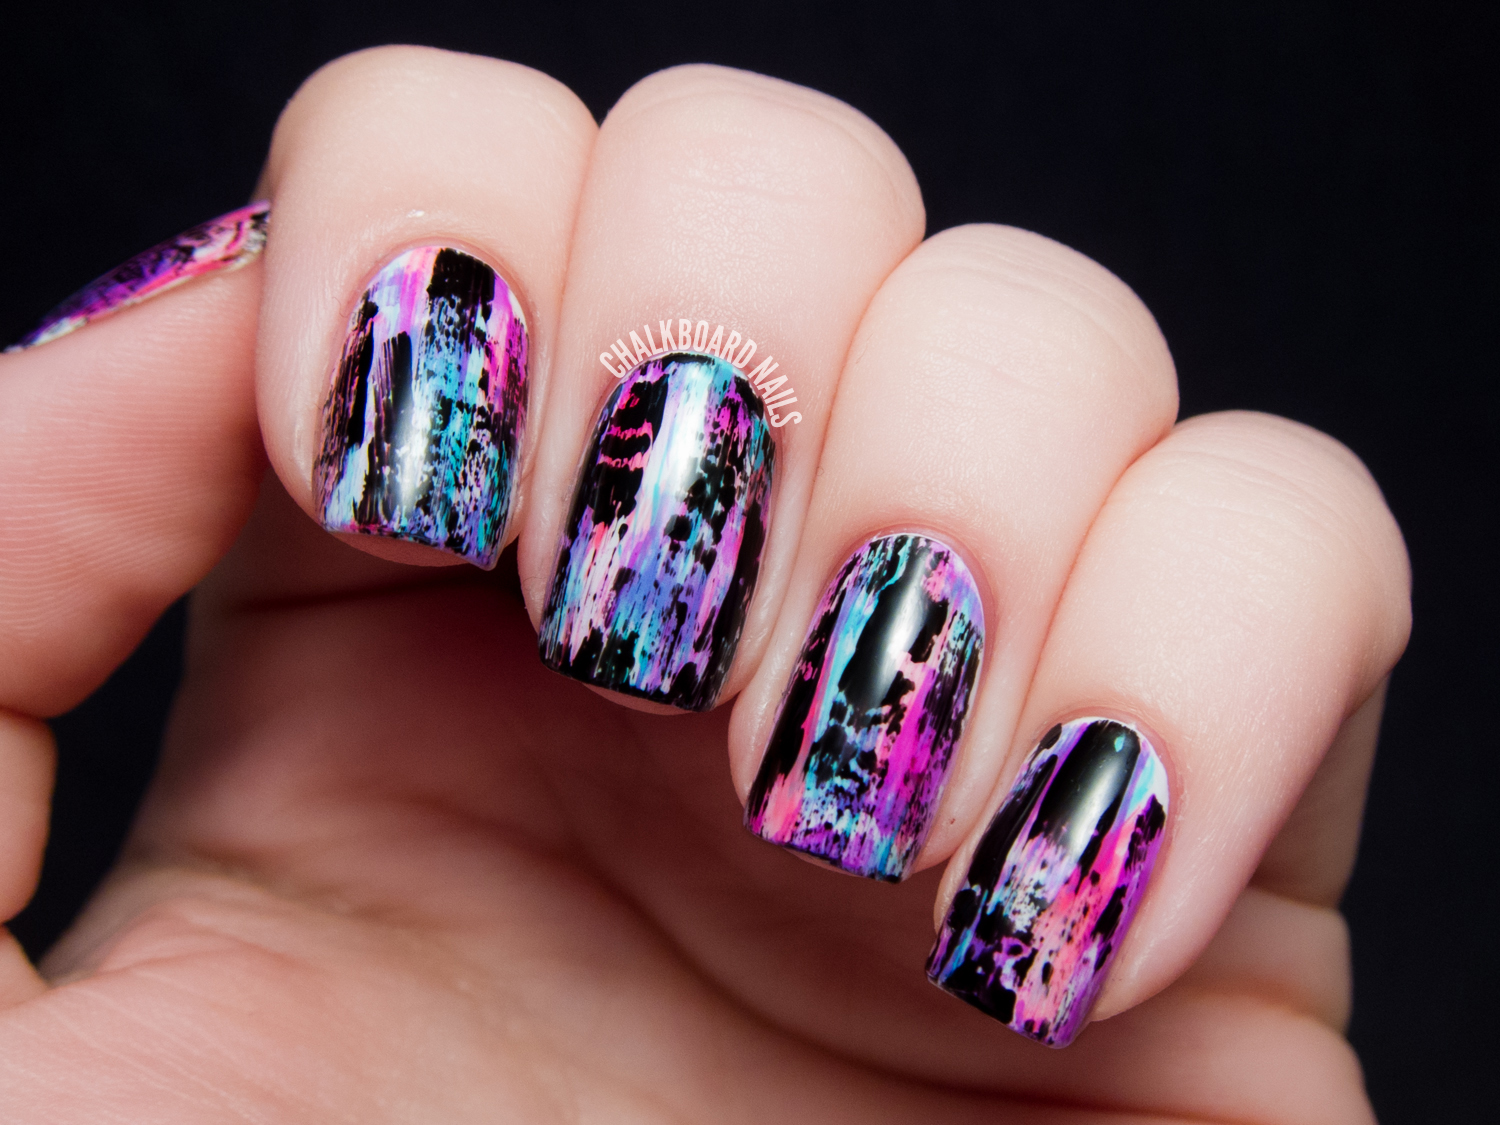 ... Nail Art (Punk/Grungy Effect) | Chalkboard Nails | Nail Art Blog